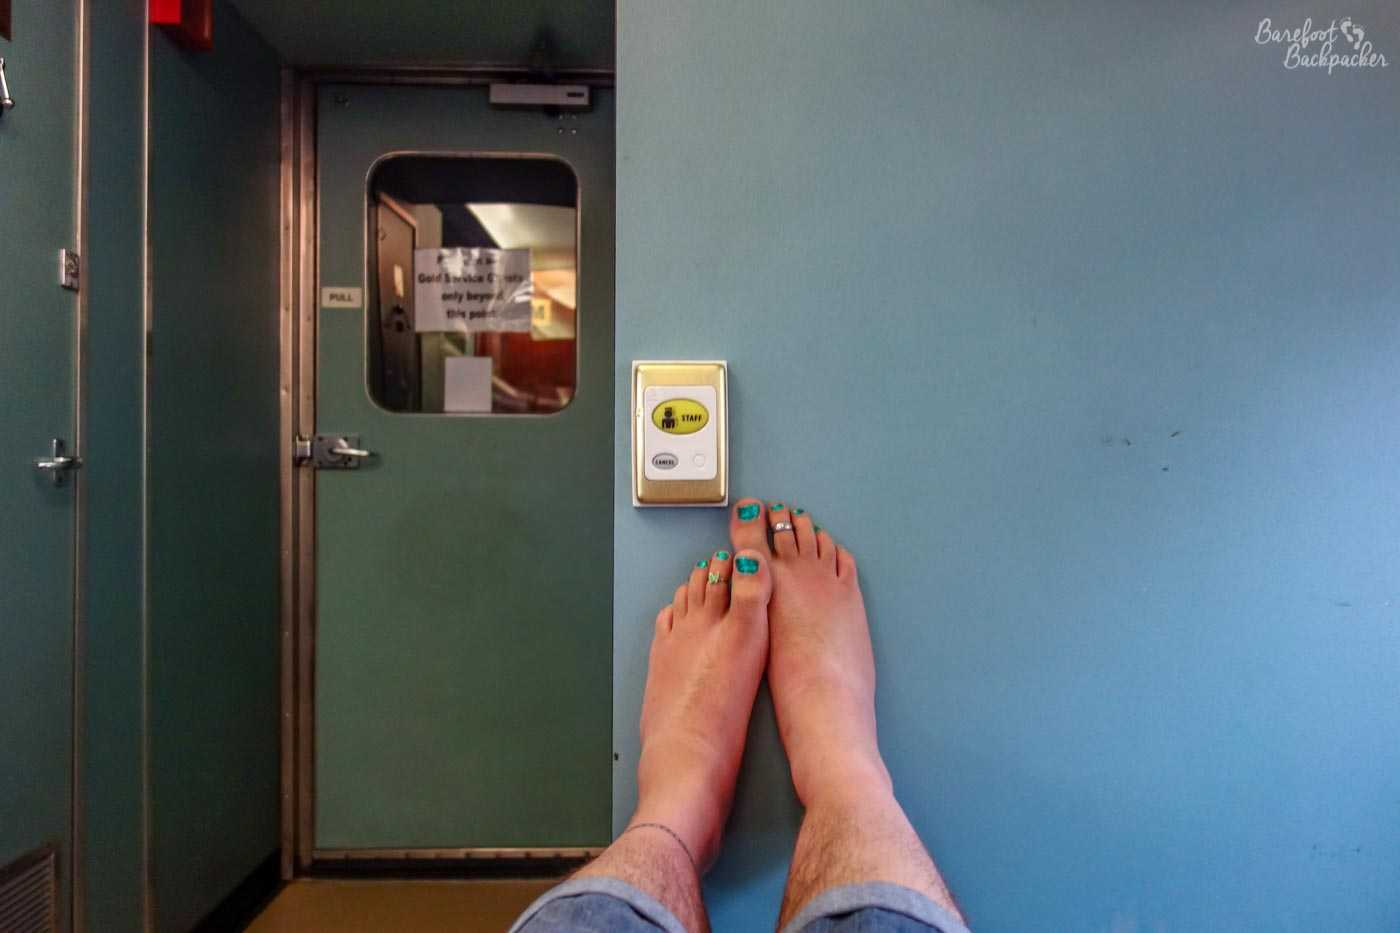 Two bare feet resting on a plain blue wall. To the left is a door that says 'Only Gold Class Ticket Holders Only'.